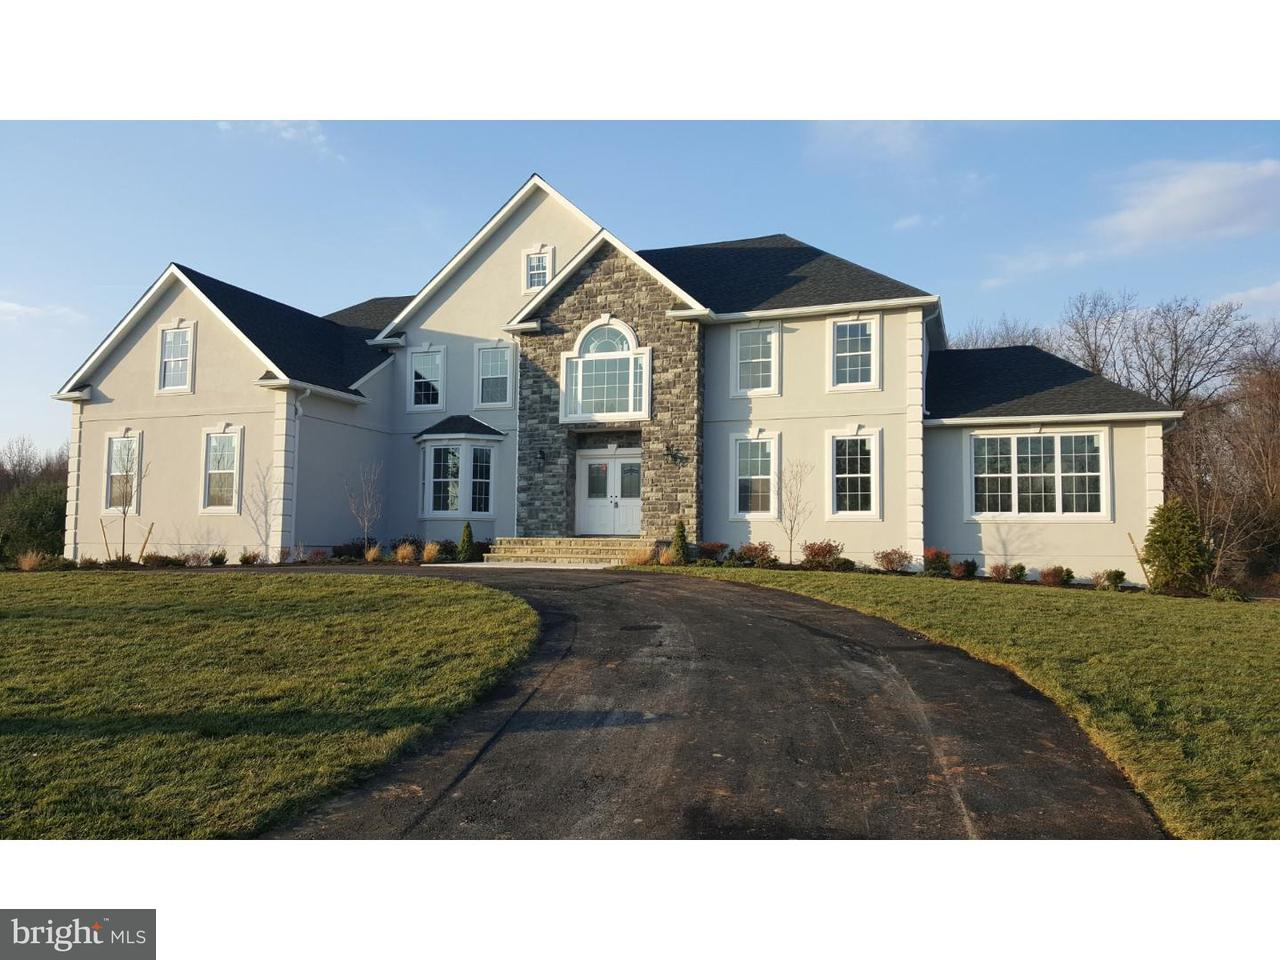 Single Family Home for Sale at 4 HELEN Court Monroe, New Jersey 08831 United StatesMunicipality: Monroe Township